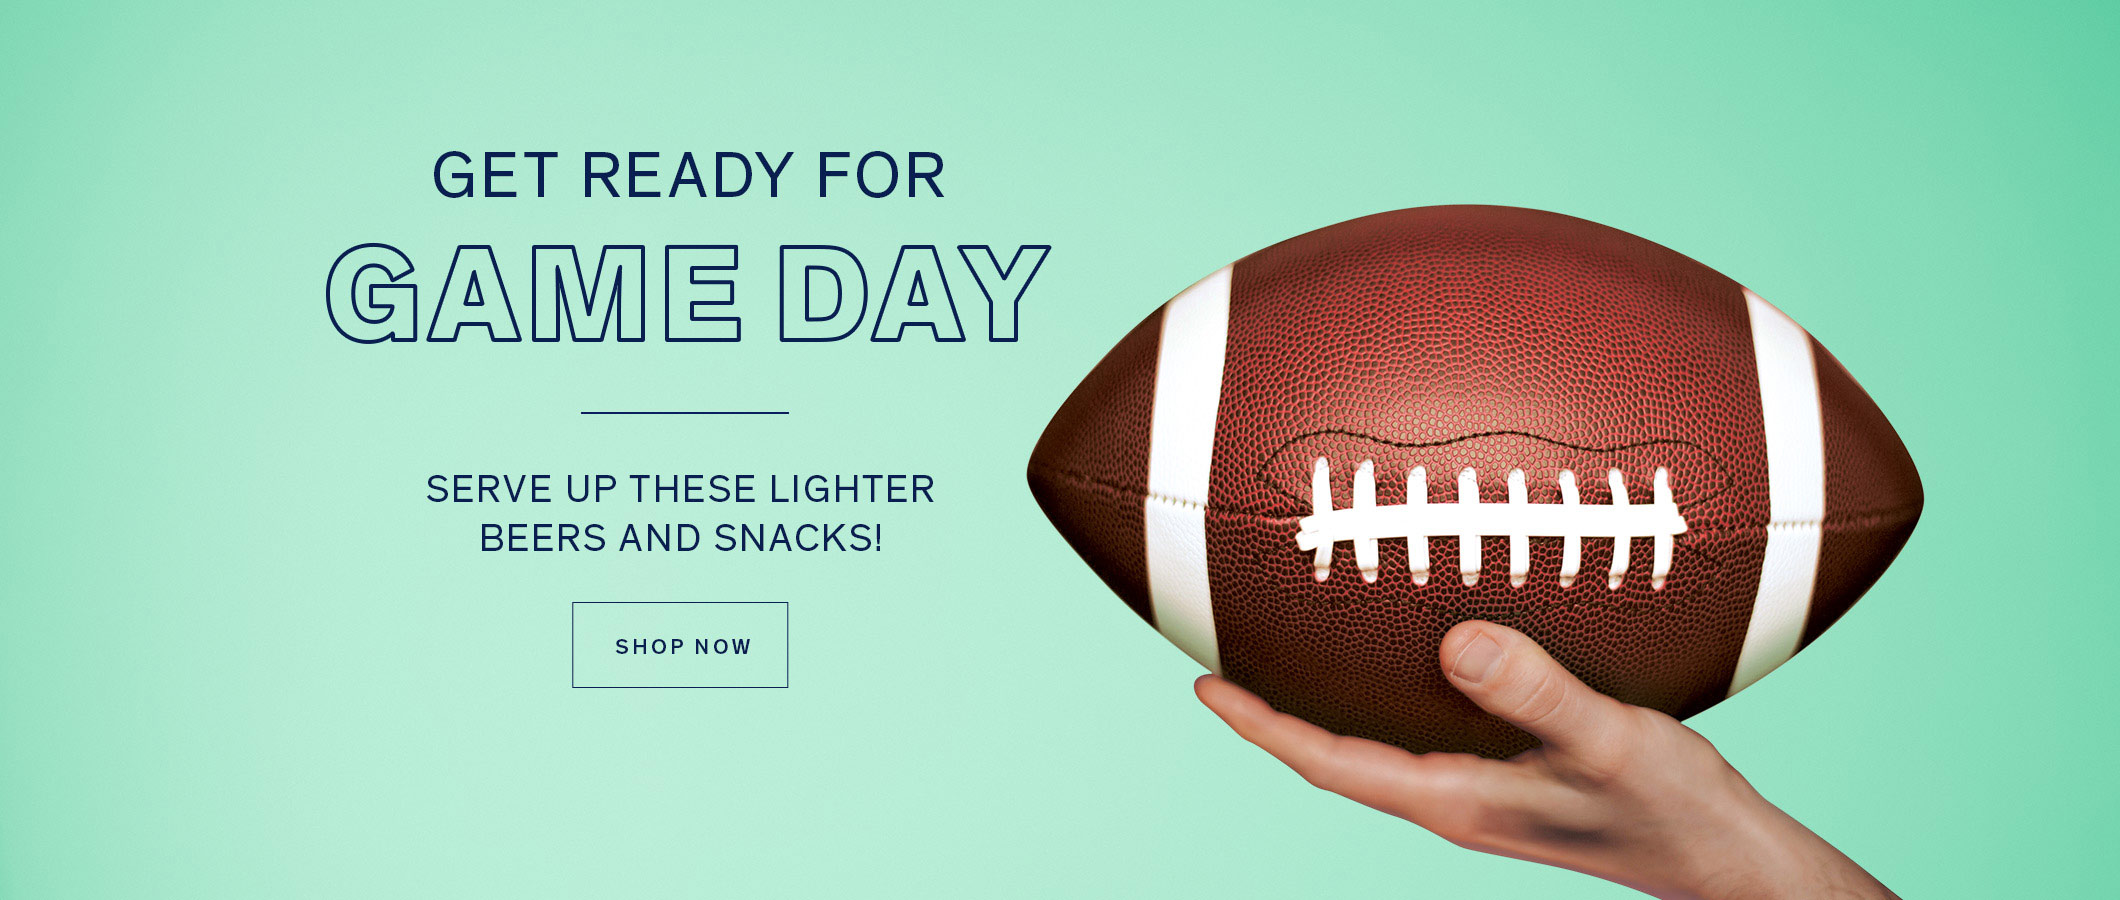 Get Ready for Game Day  Serve up these lighter beers and snacks!  READ MORE